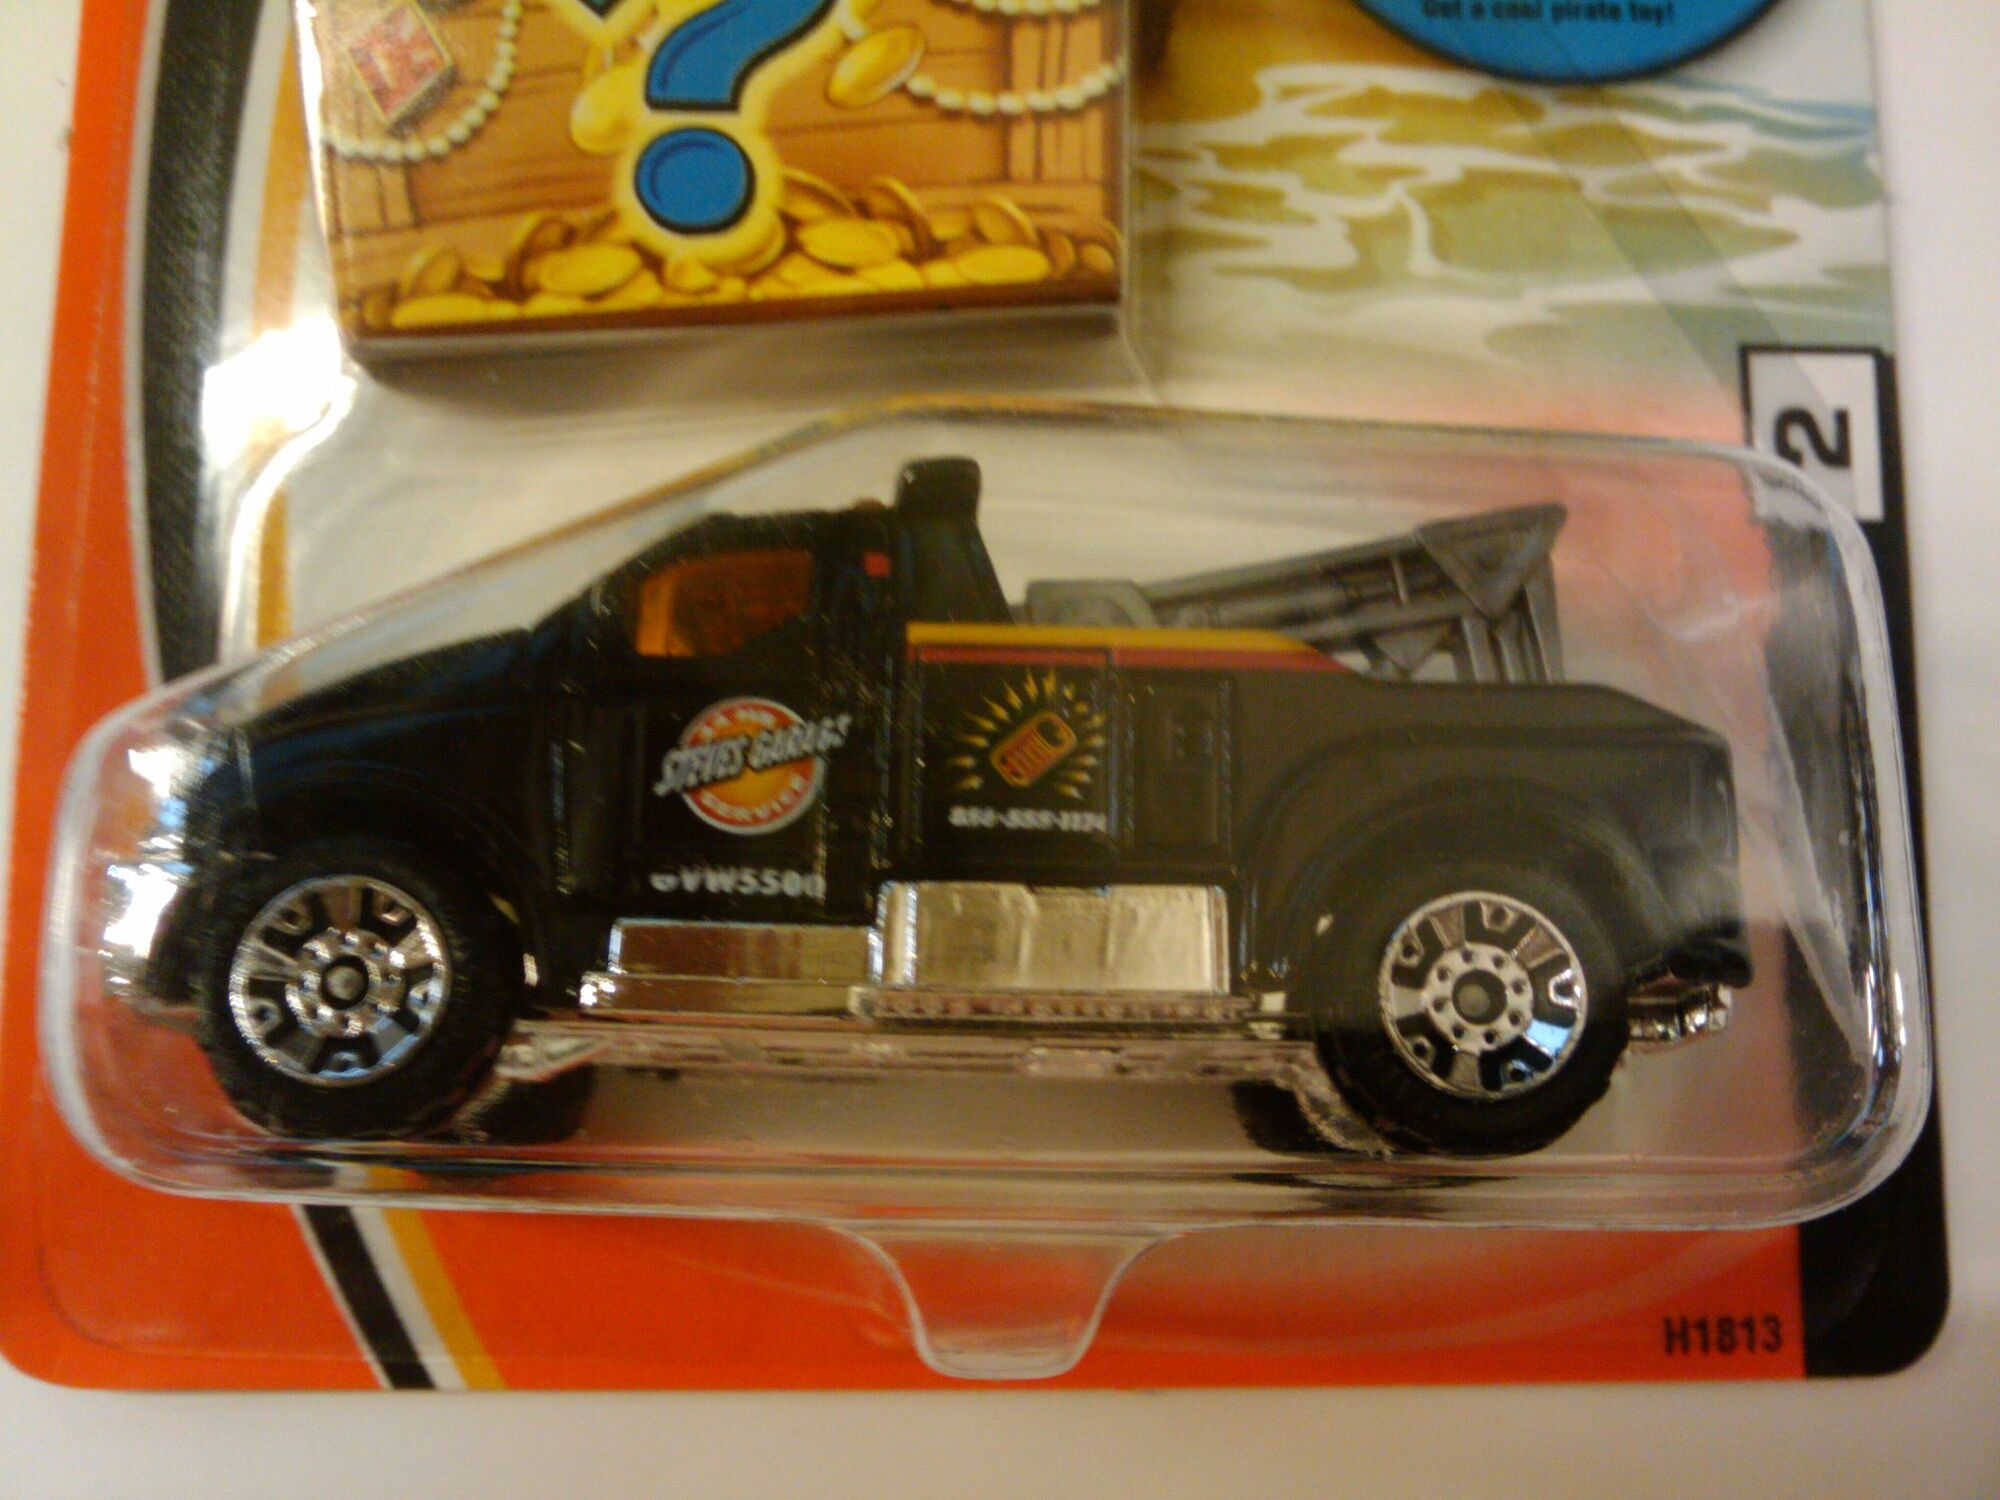 Ford Explorer Sport Trac 2017 >> List of 2005 Matchbox | Matchbox Cars Wiki | FANDOM